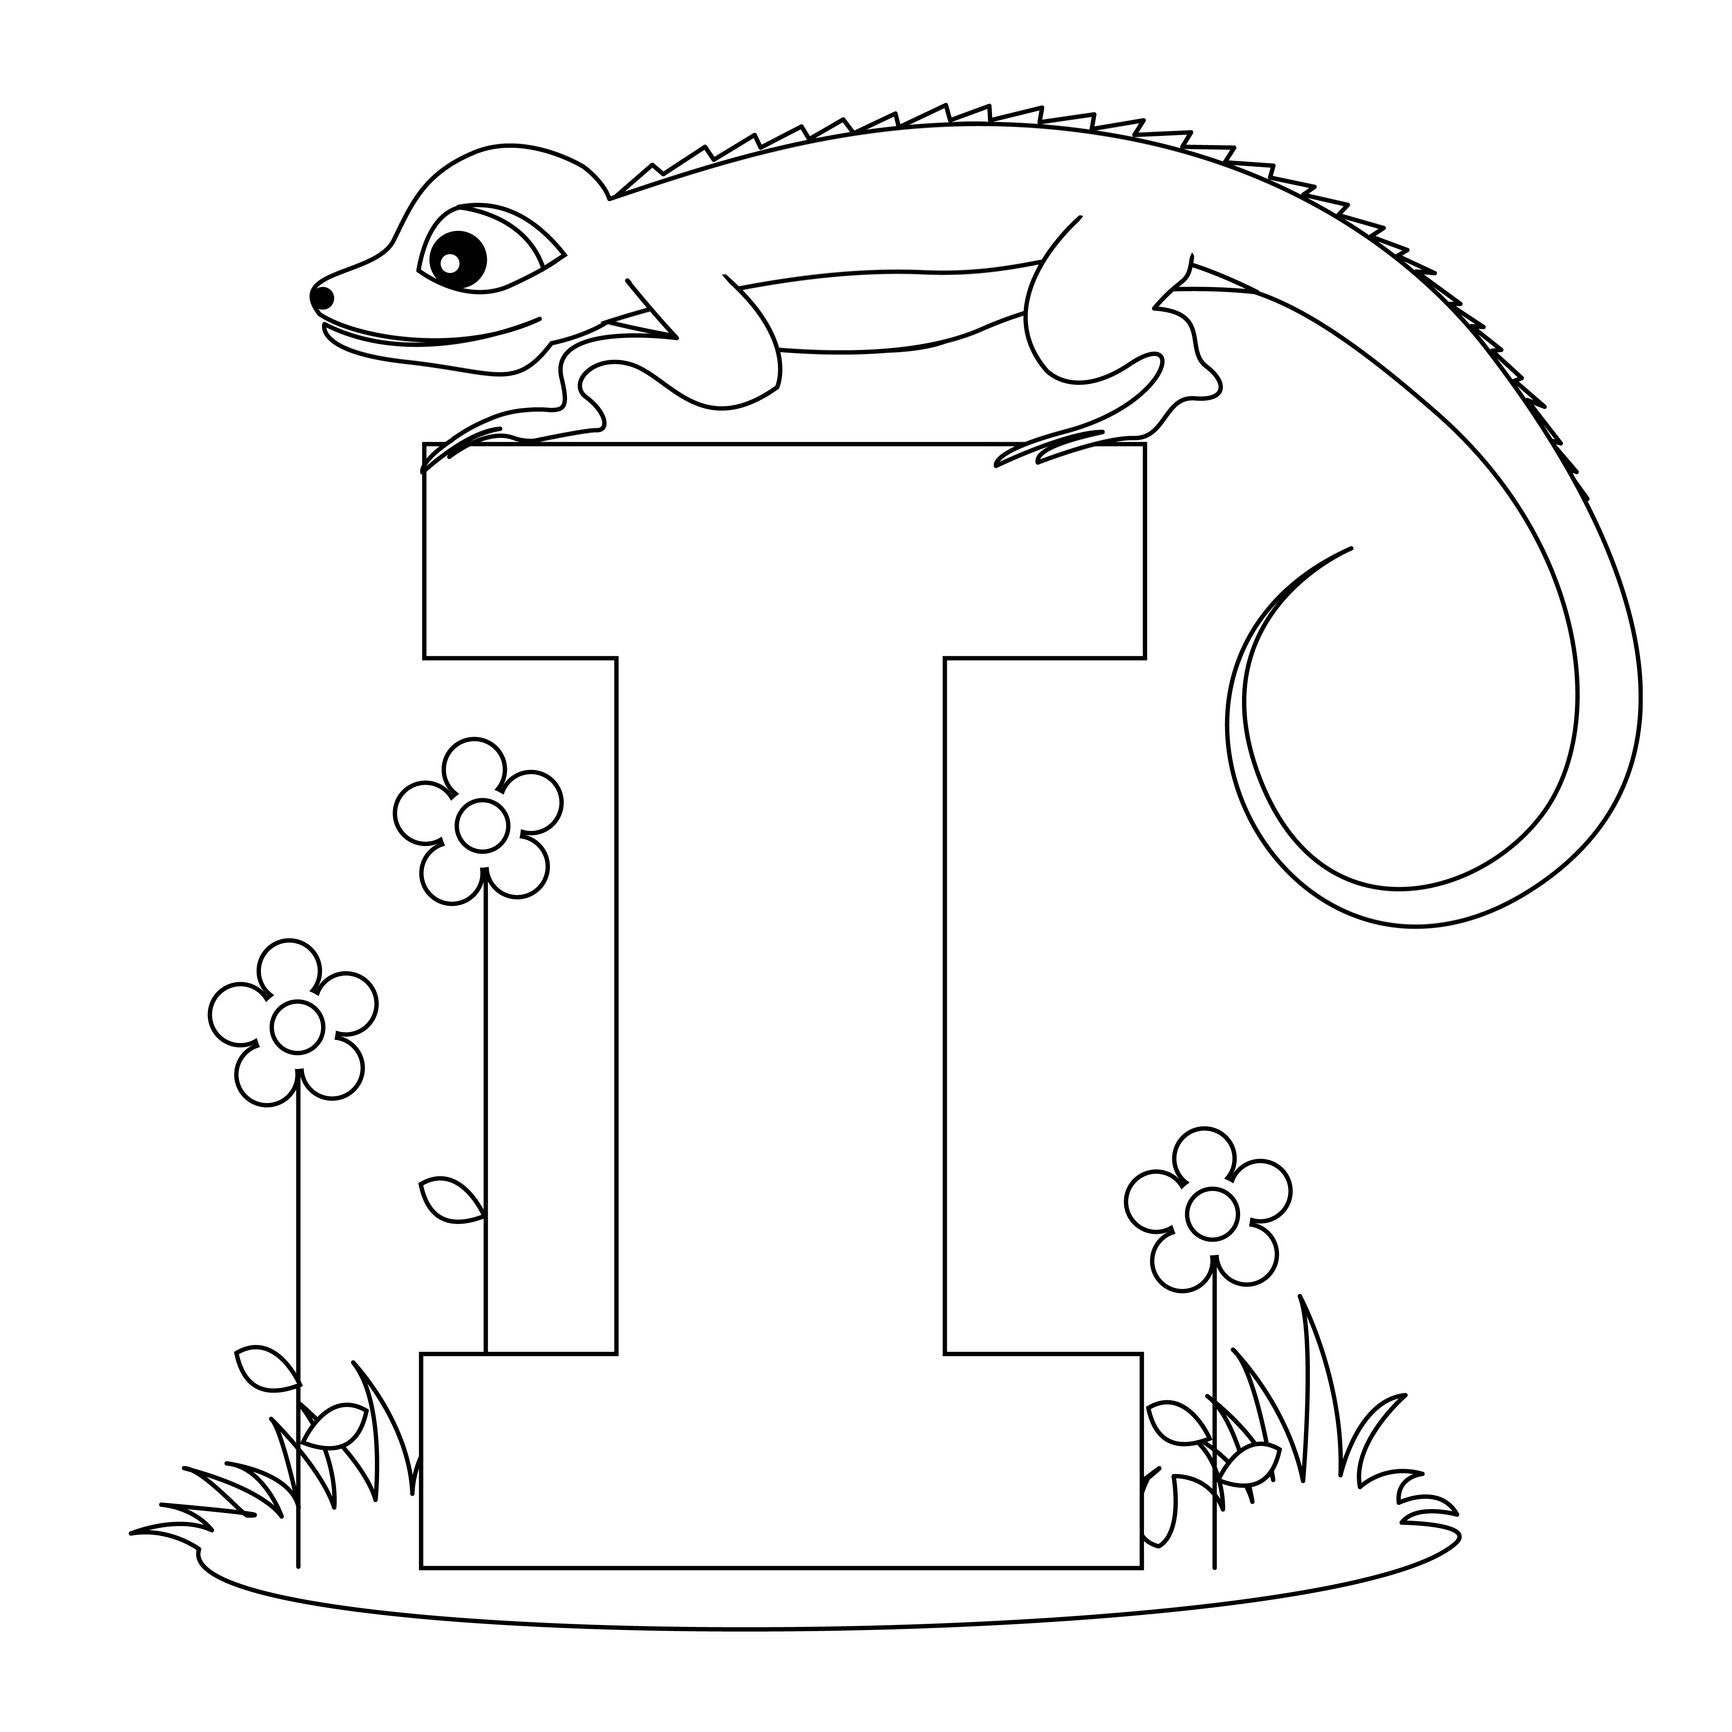 image detail for animal alphabet letter i coloring worksheet